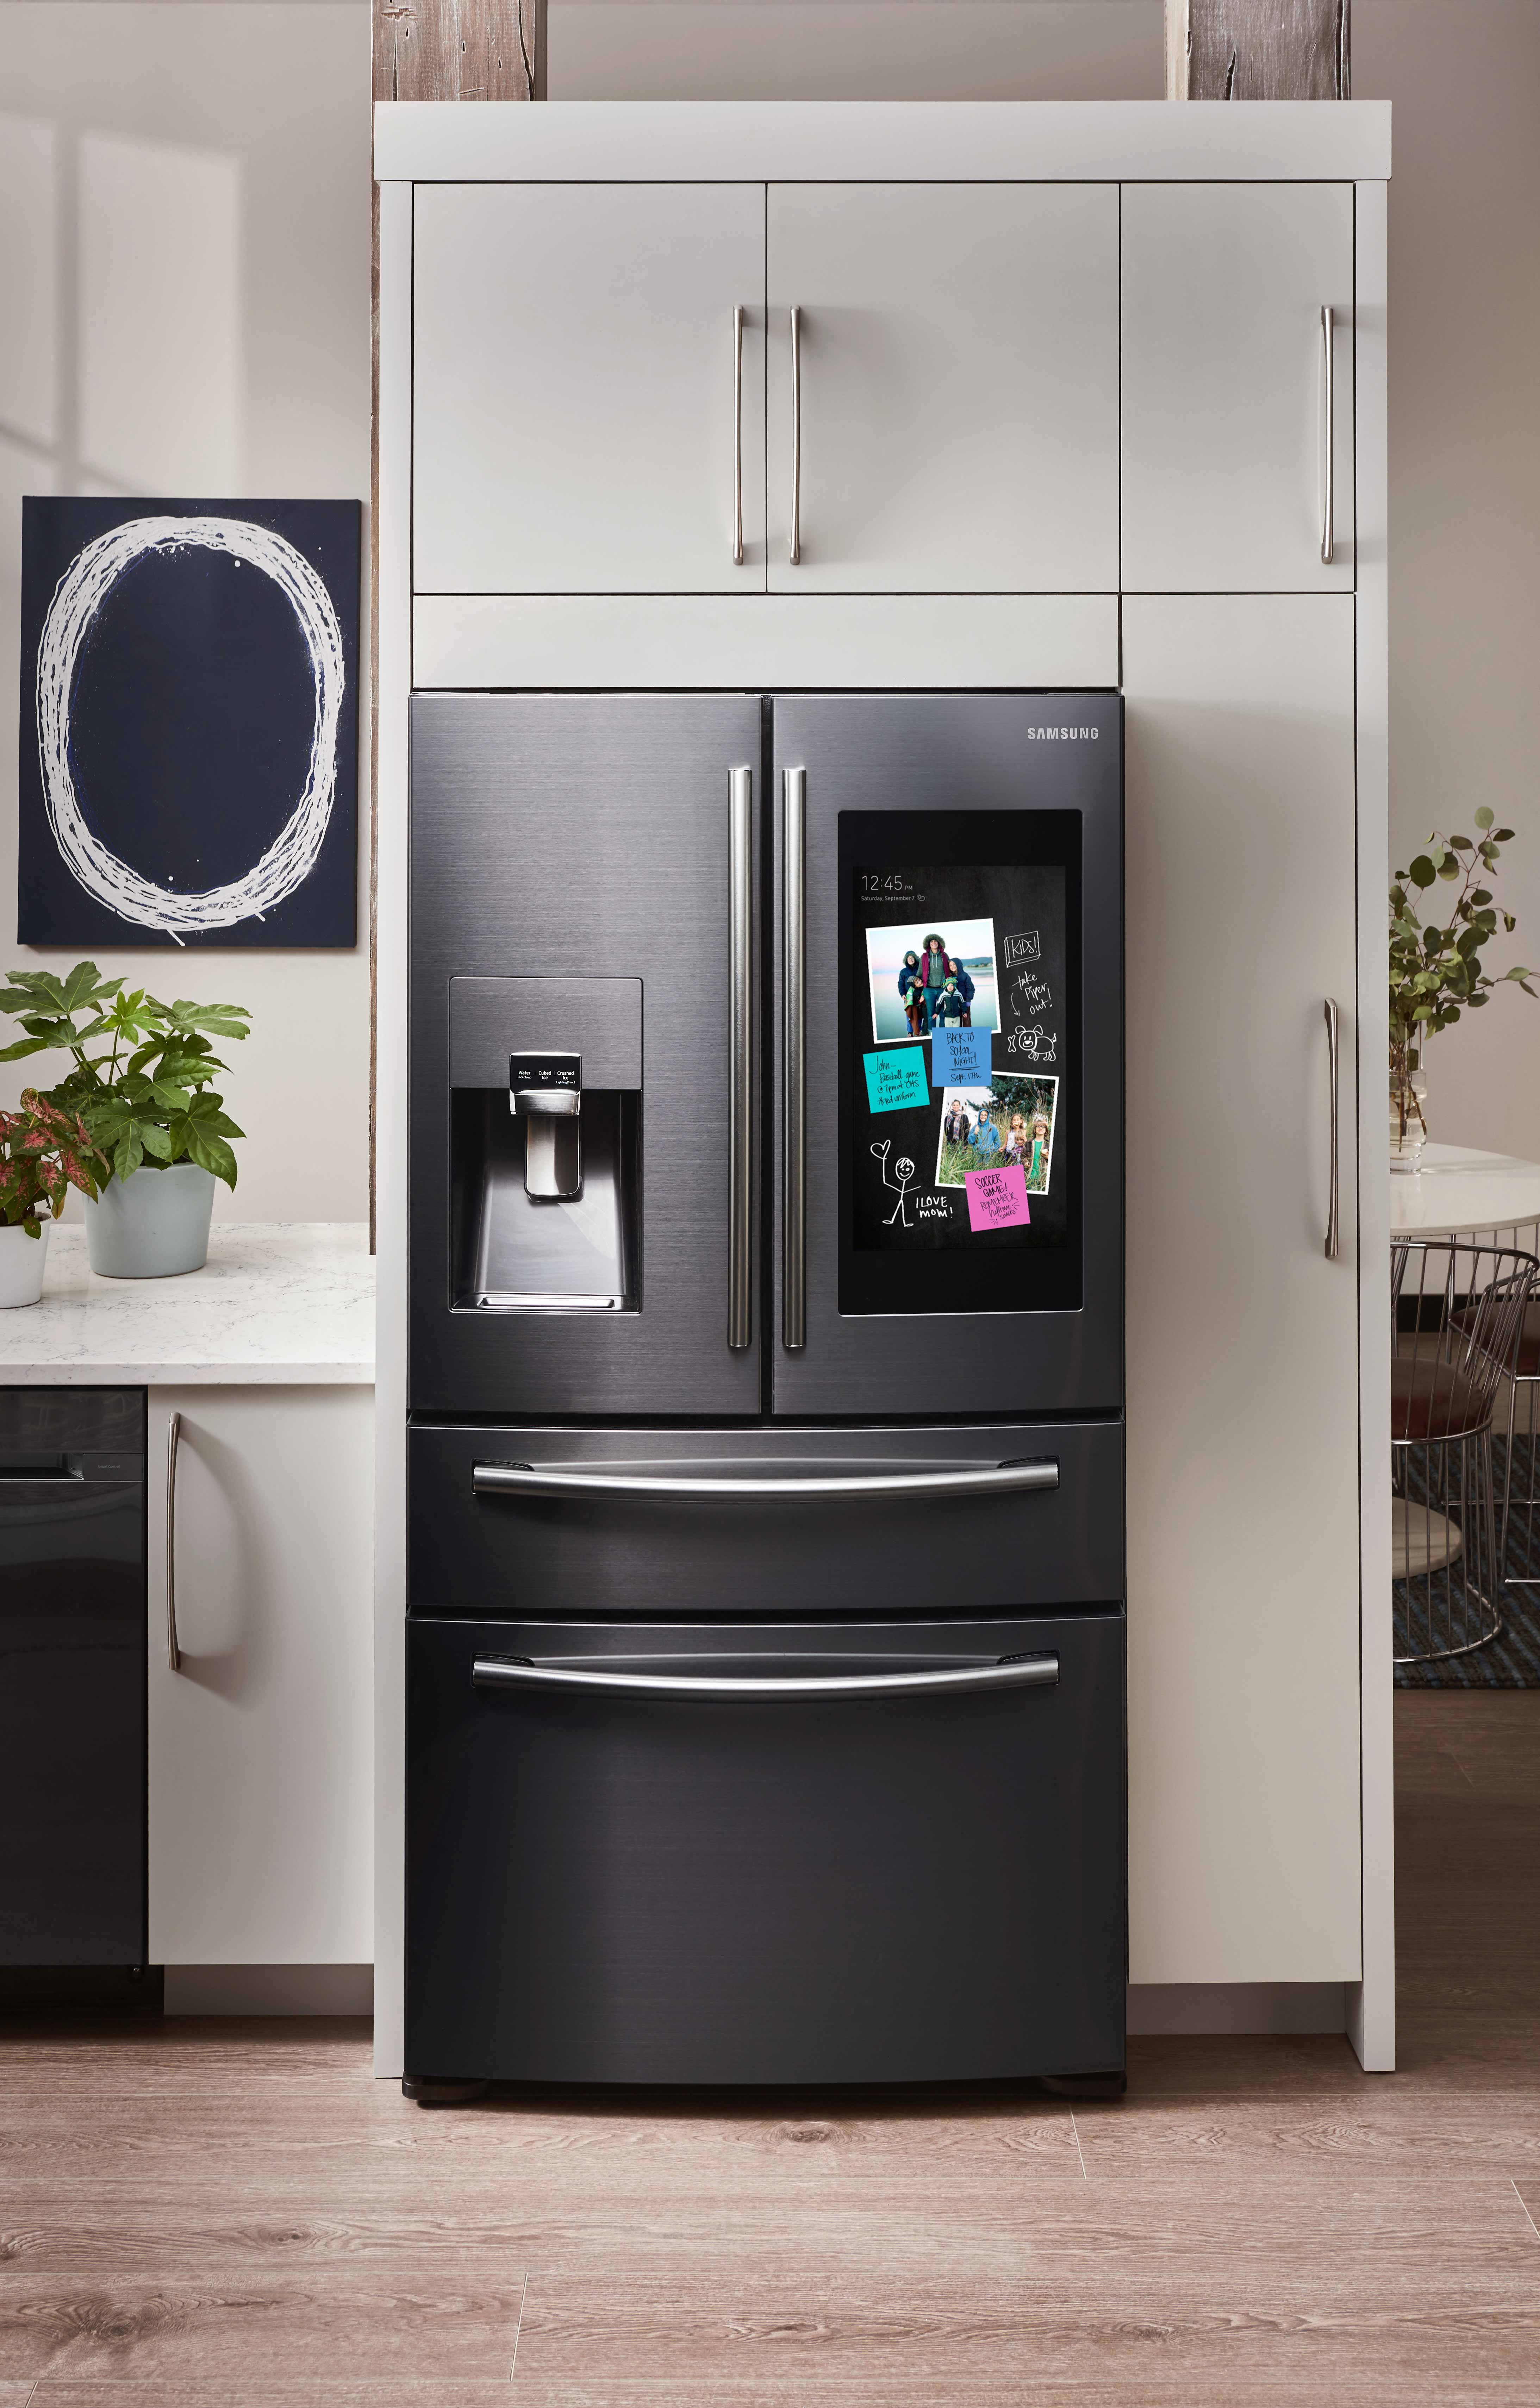 2020 Holiday Gift Guide - Home Appliance - Family Hub